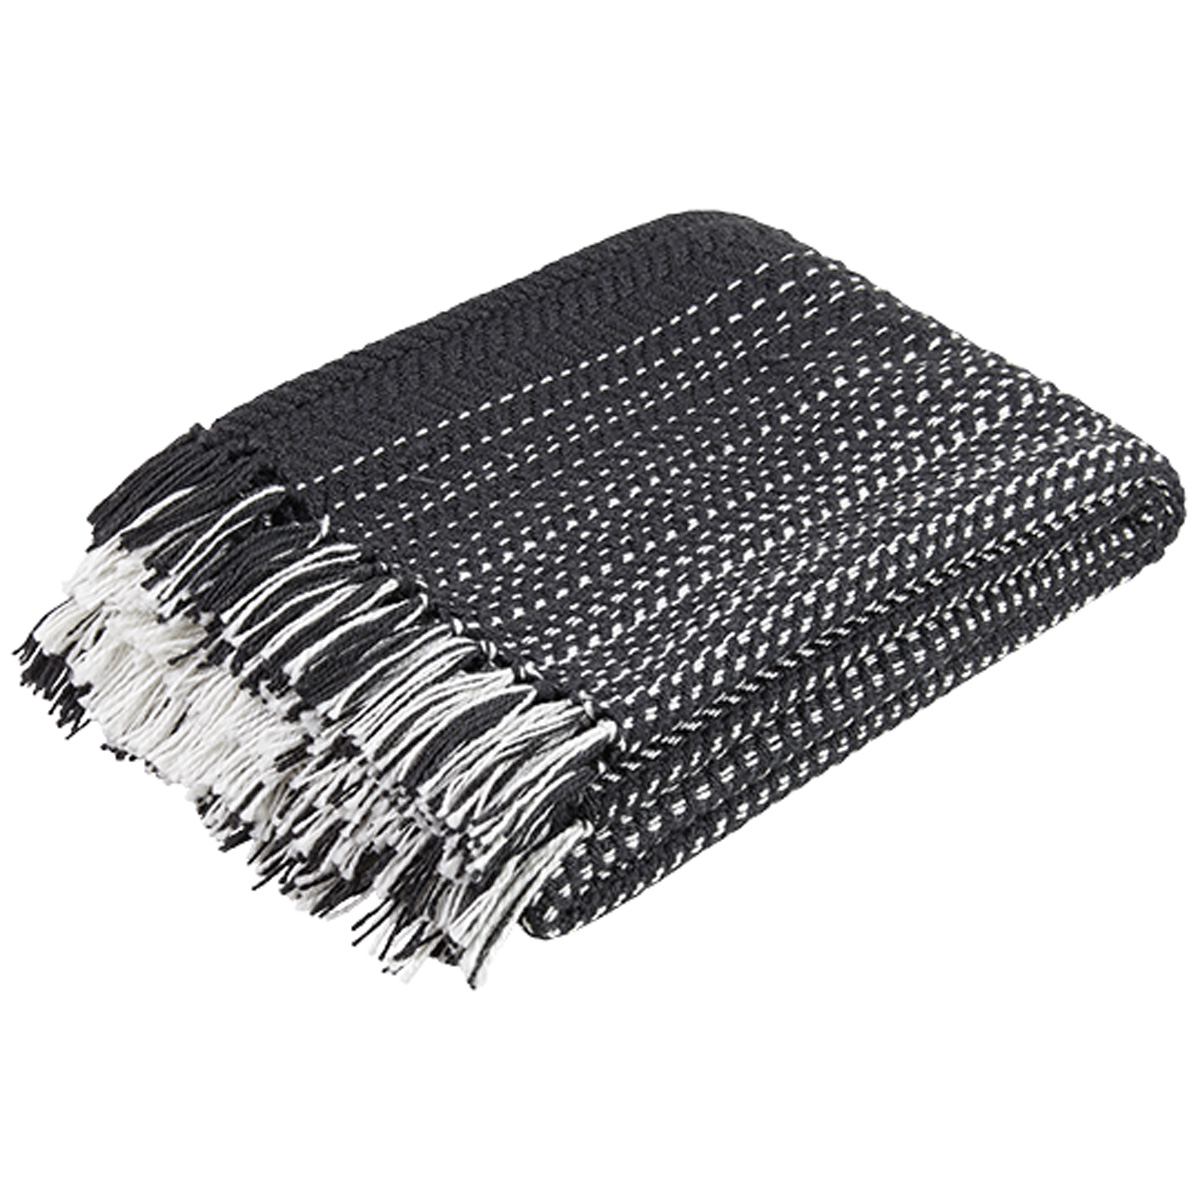 black and white throw with tassles